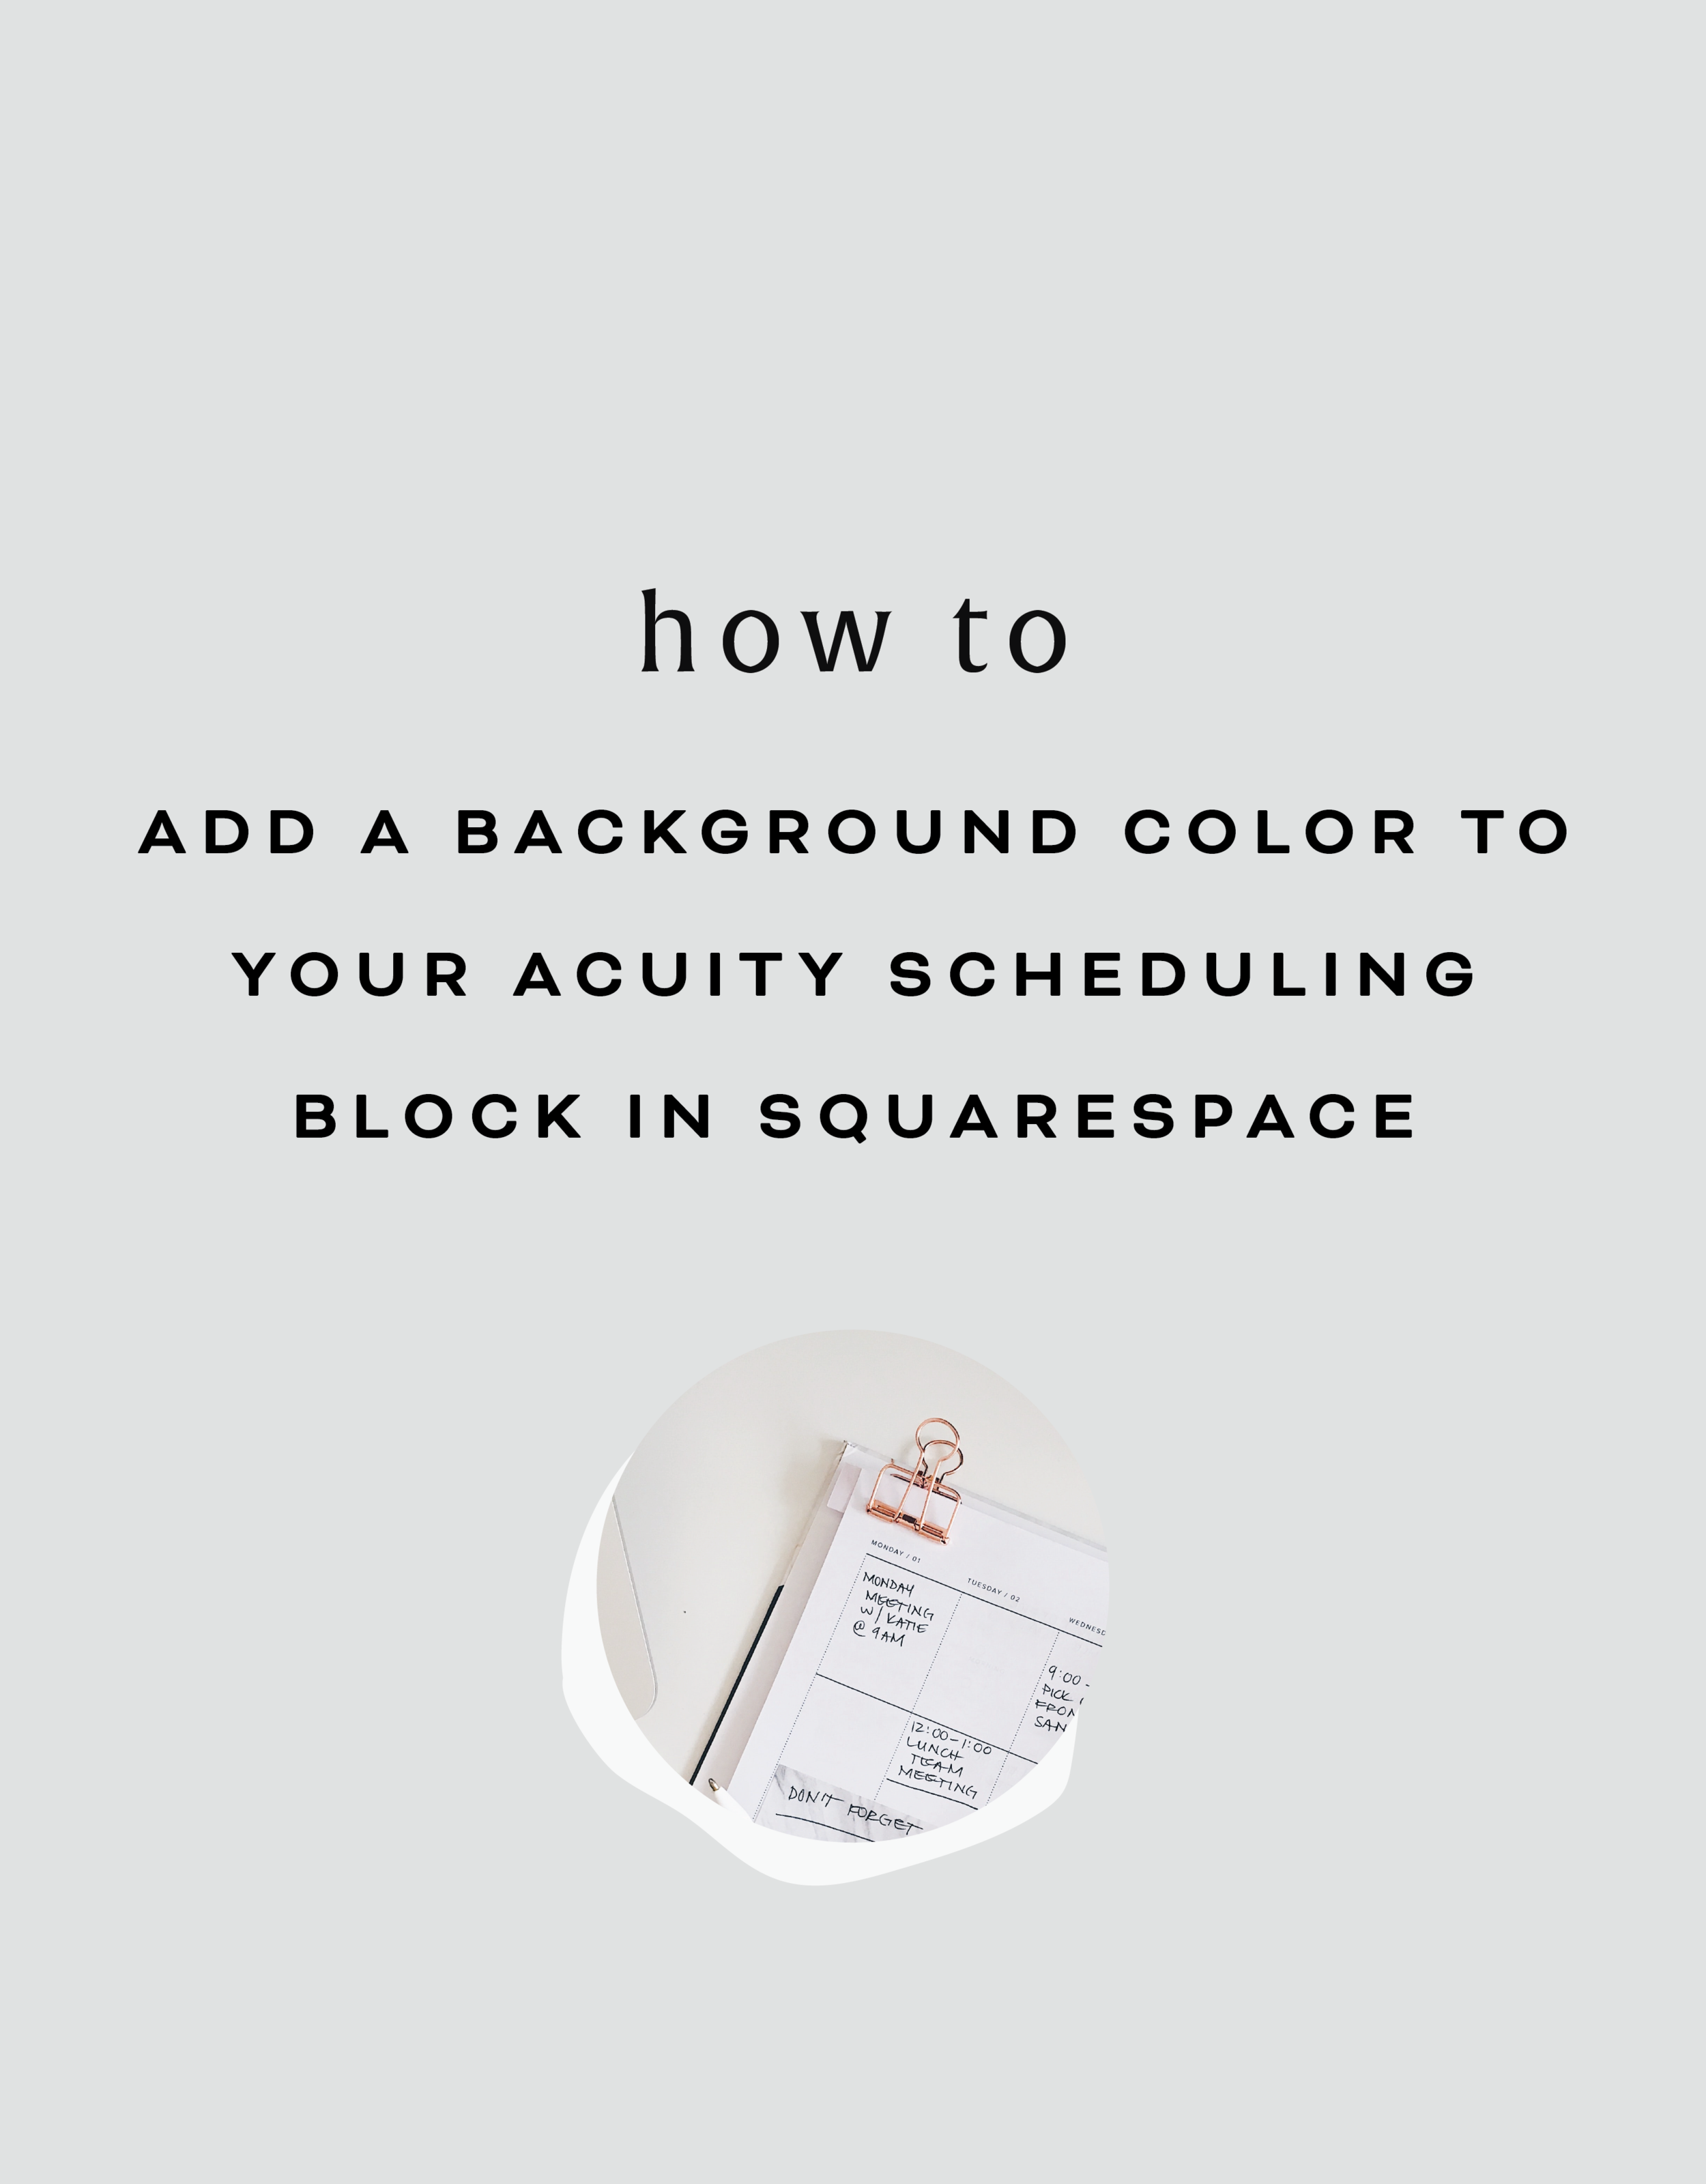 Adding a Background Color to Your Acuity Scheduling Block